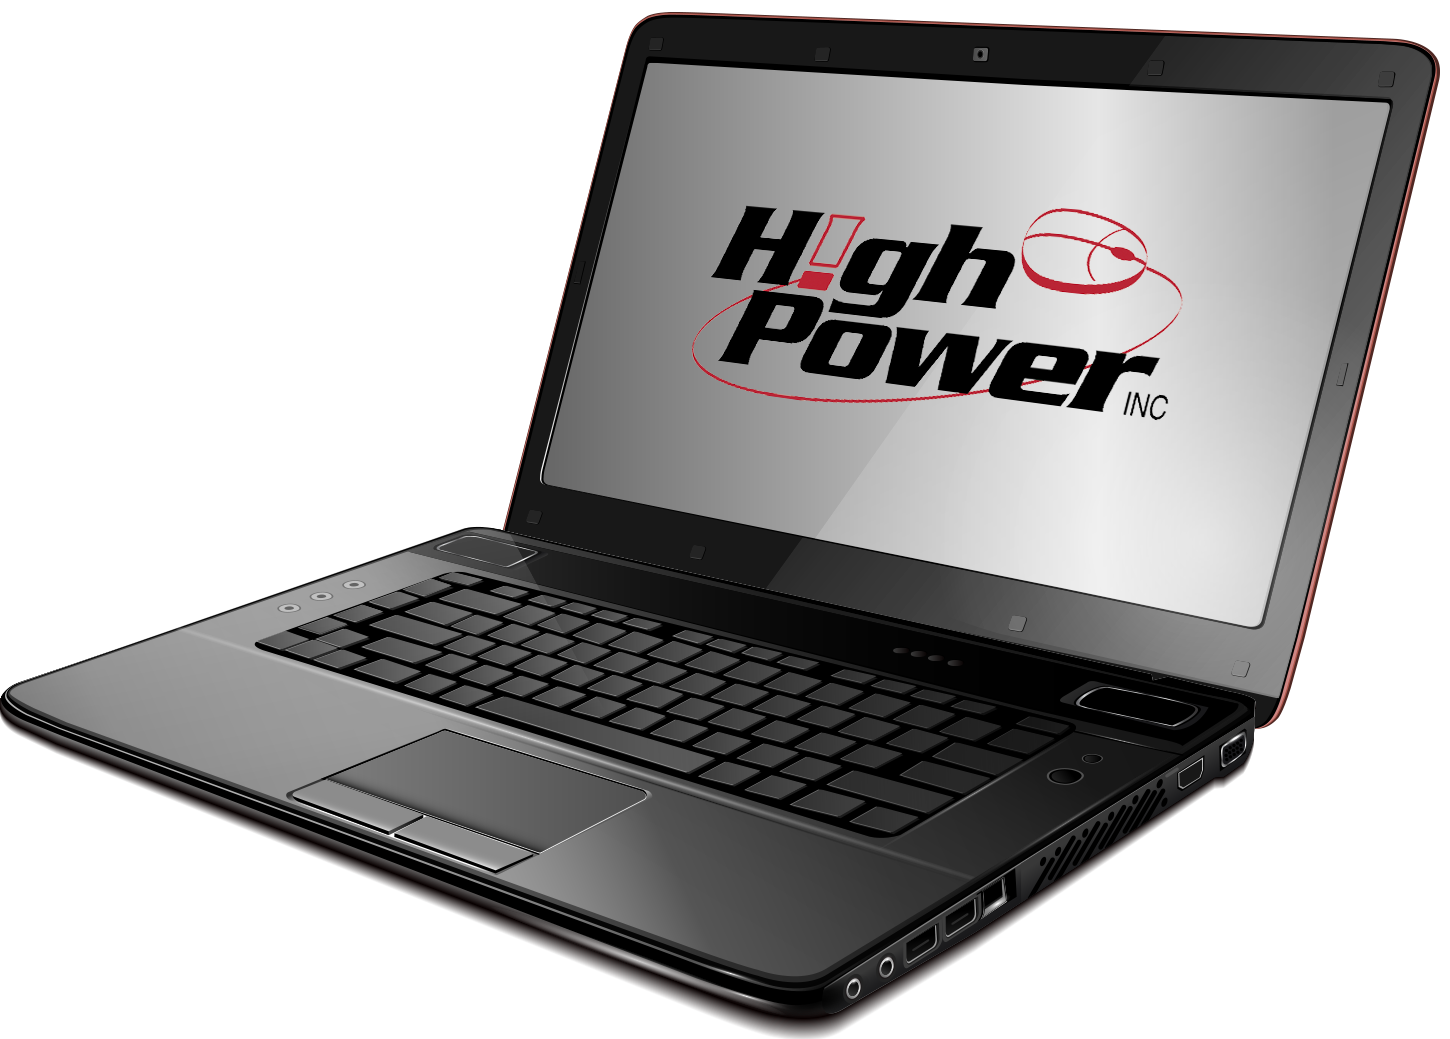 High Voltage Computer : High power just another wordpress site